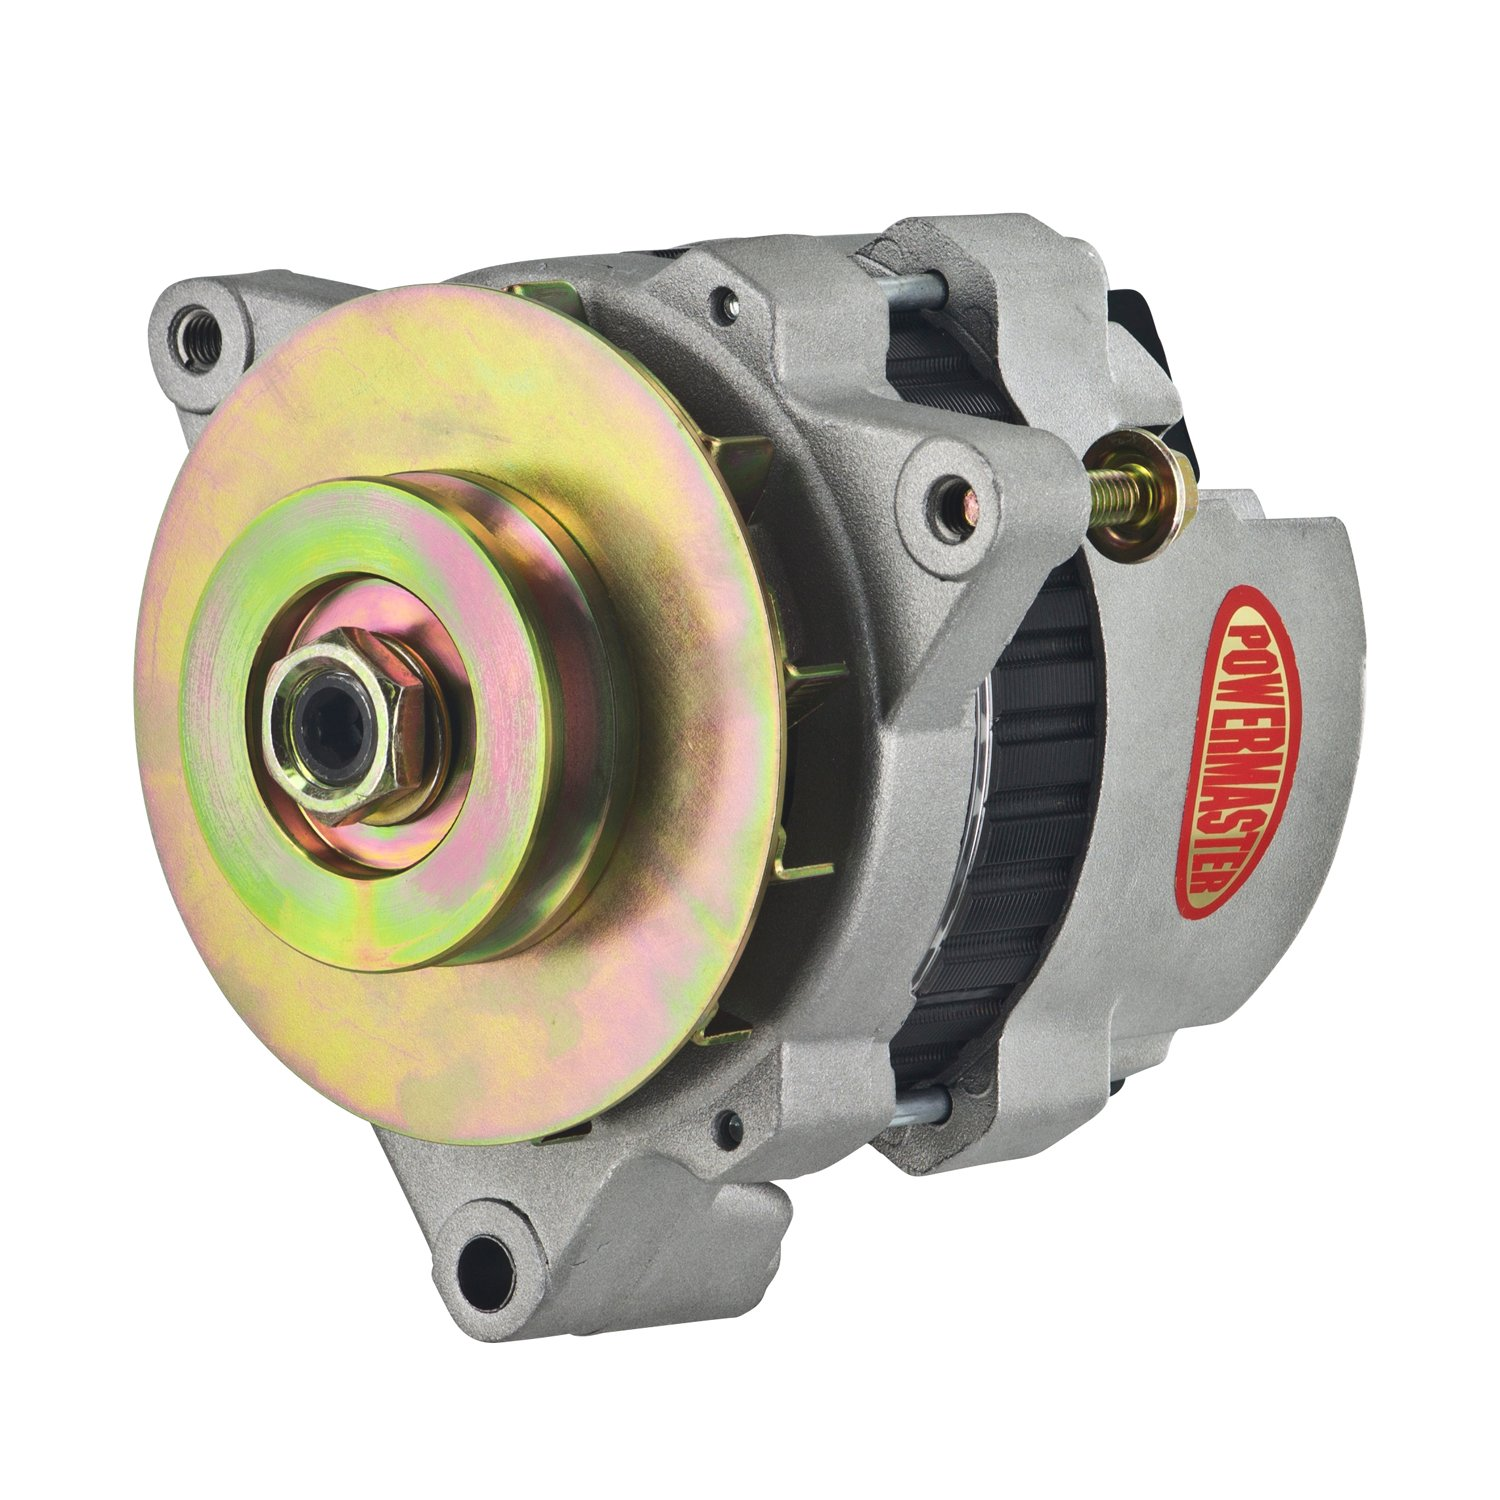 Powermaster 7478-104 - Powermaster GM CS121 Style 5x5 Compact Race Alternators